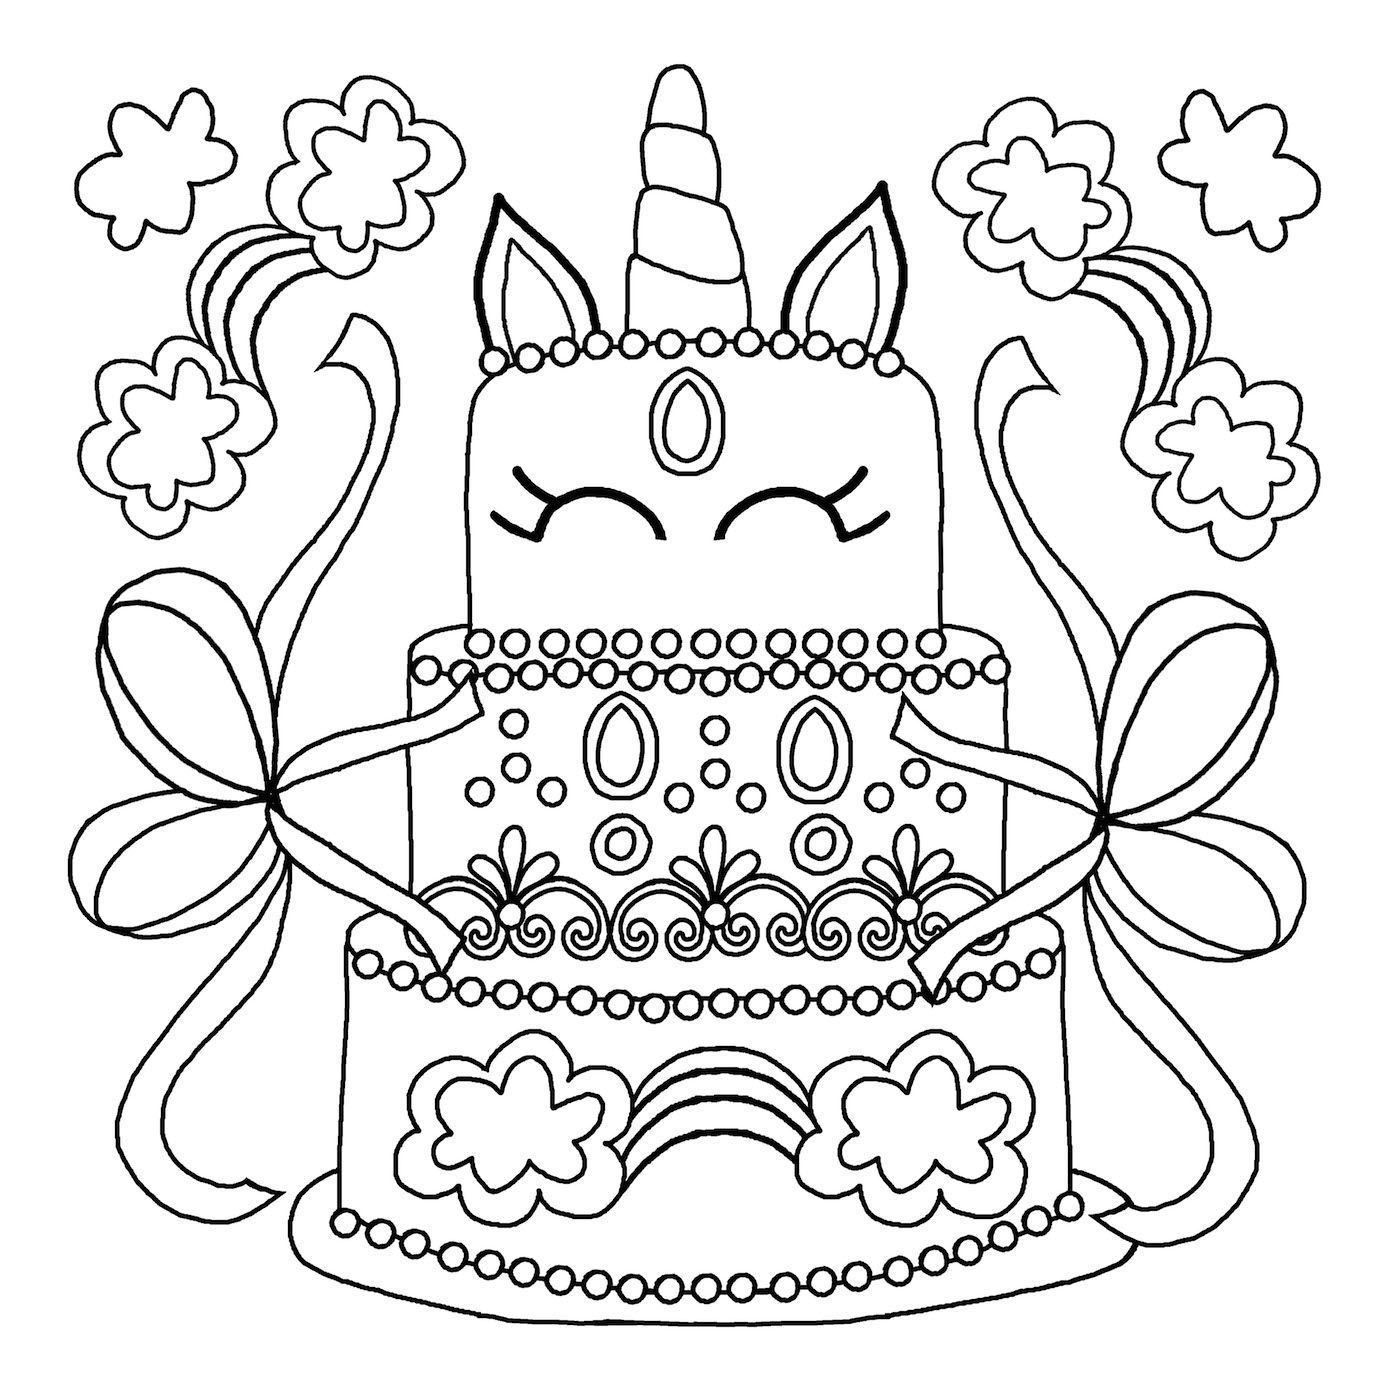 Unicorn Cake Coloring Pages Free Coloring Sheets Mermaid Coloring Pages Unicorn Coloring Pages Christmas Coloring Pages